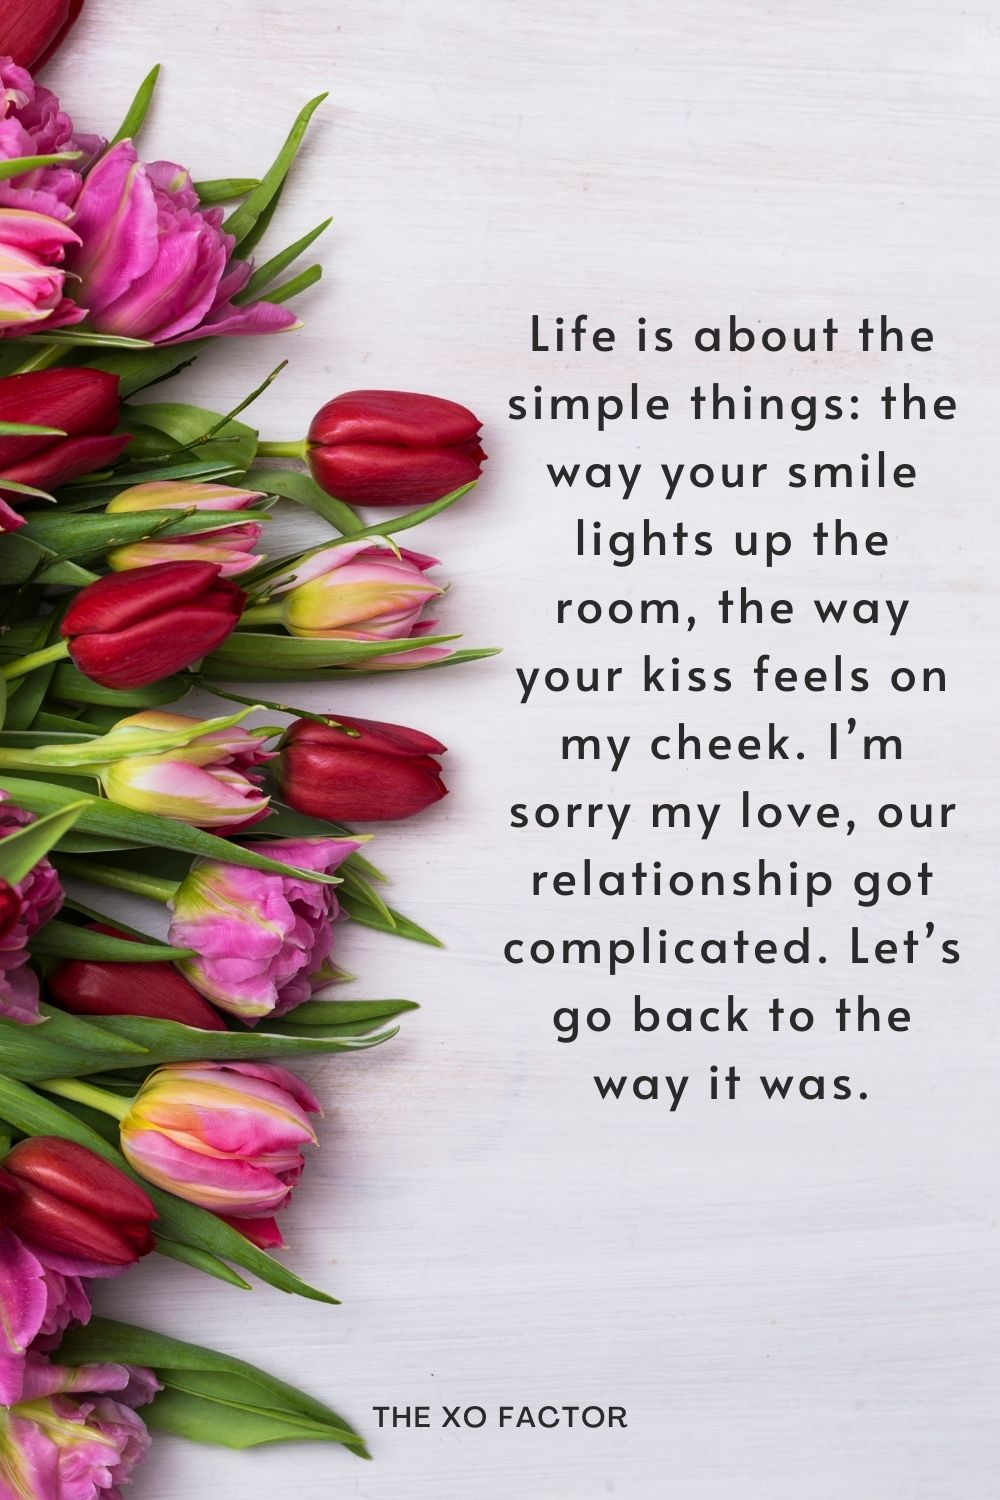 Life is about the simple things: the way your smile lights up the room, the way your kiss feels on my cheek. I'm sorry my love, our relationship got complicated. Let's go back to the way it was.